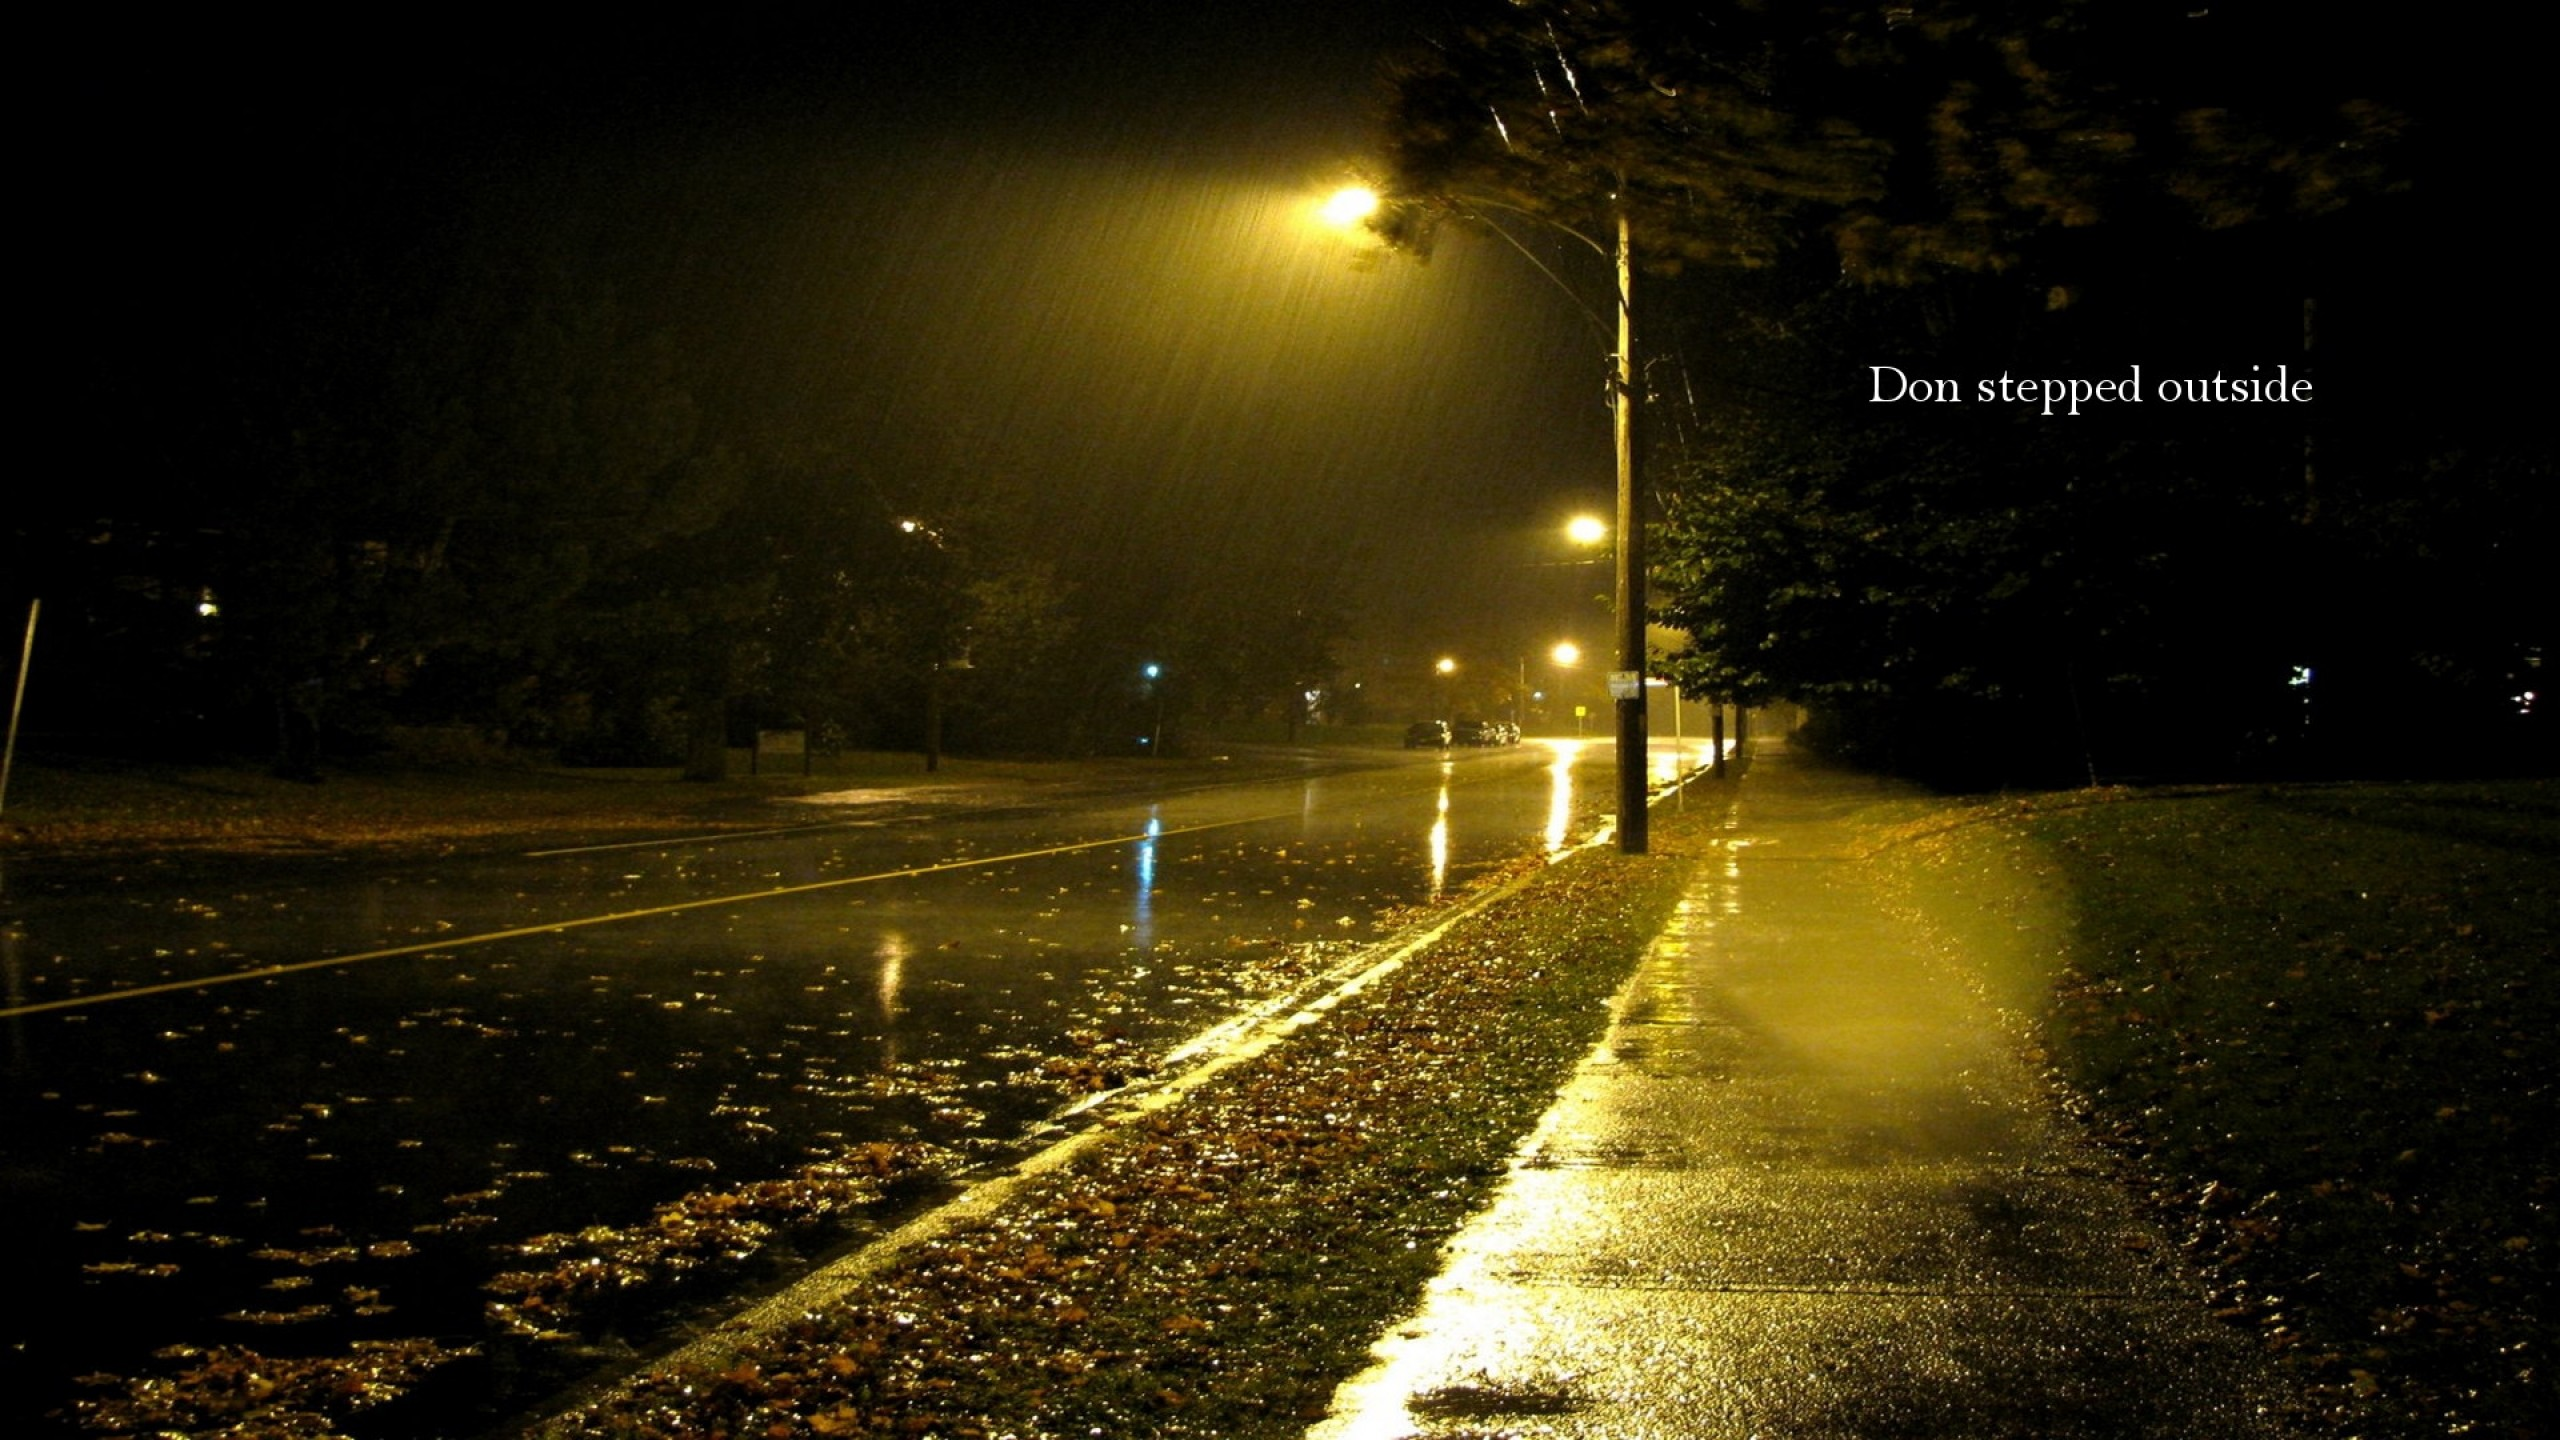 Rainy Street At Night HD Wallpaper